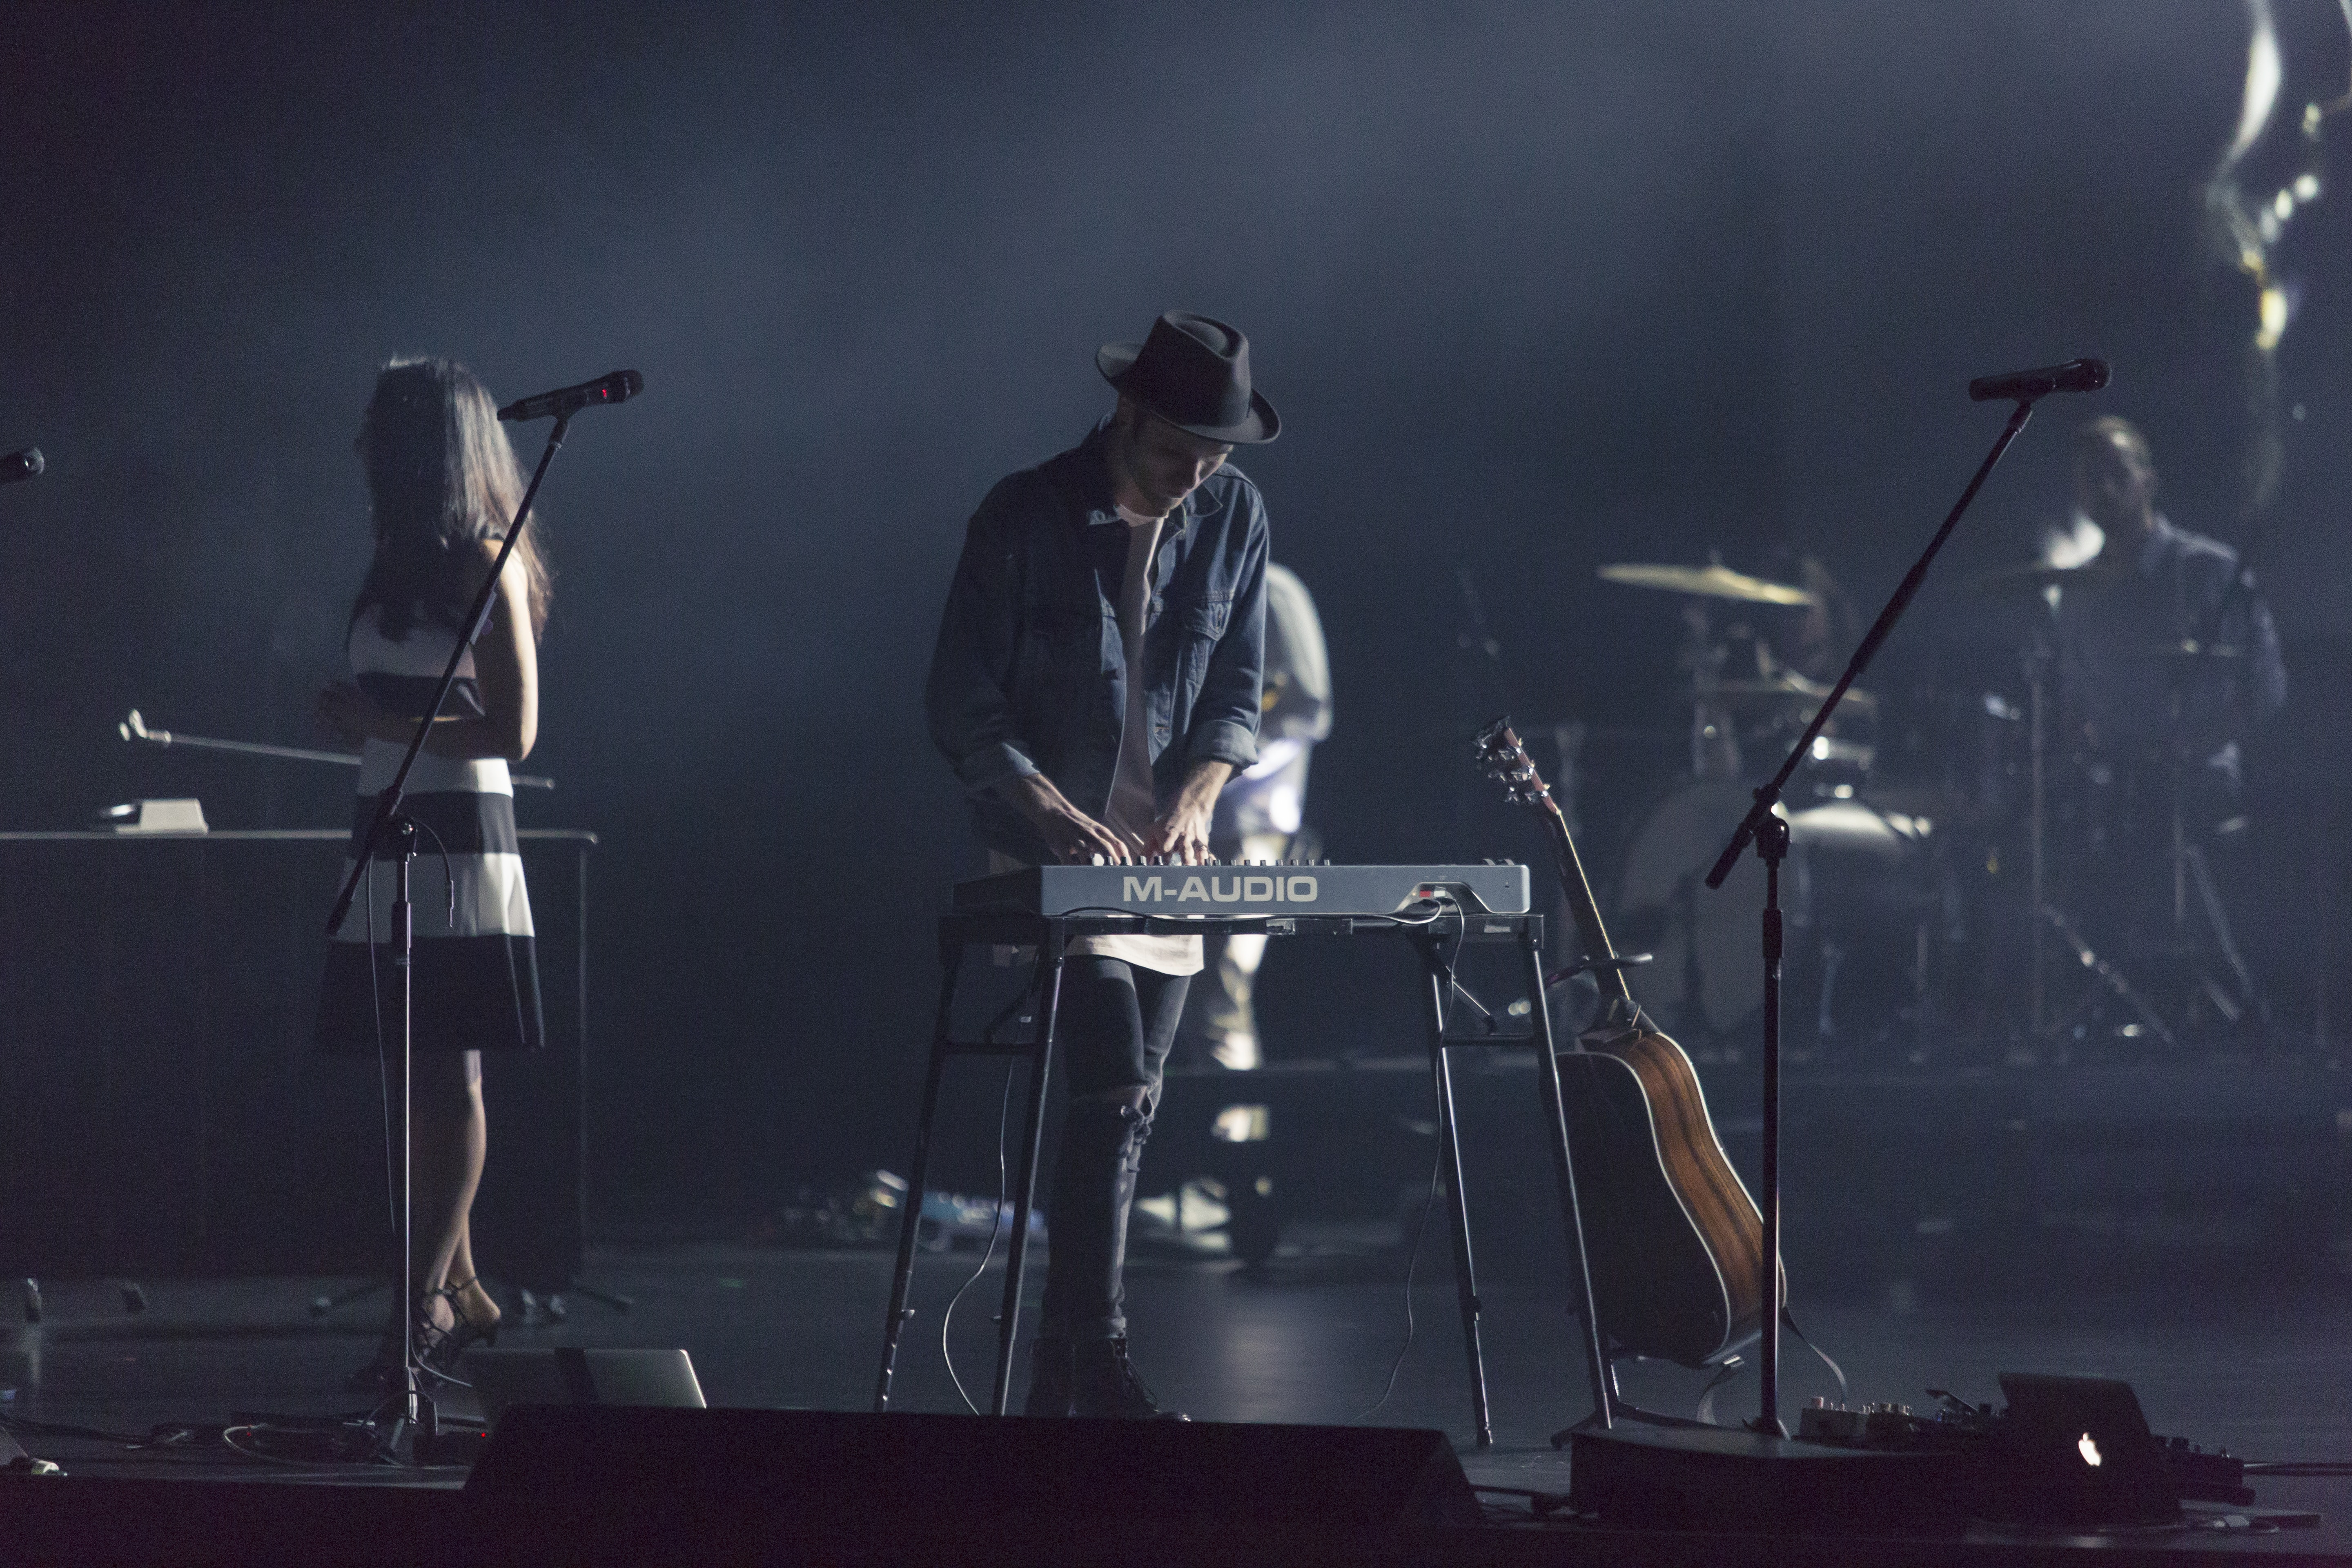 A man in a hat playing the keyboard during a concert with other band members at the back